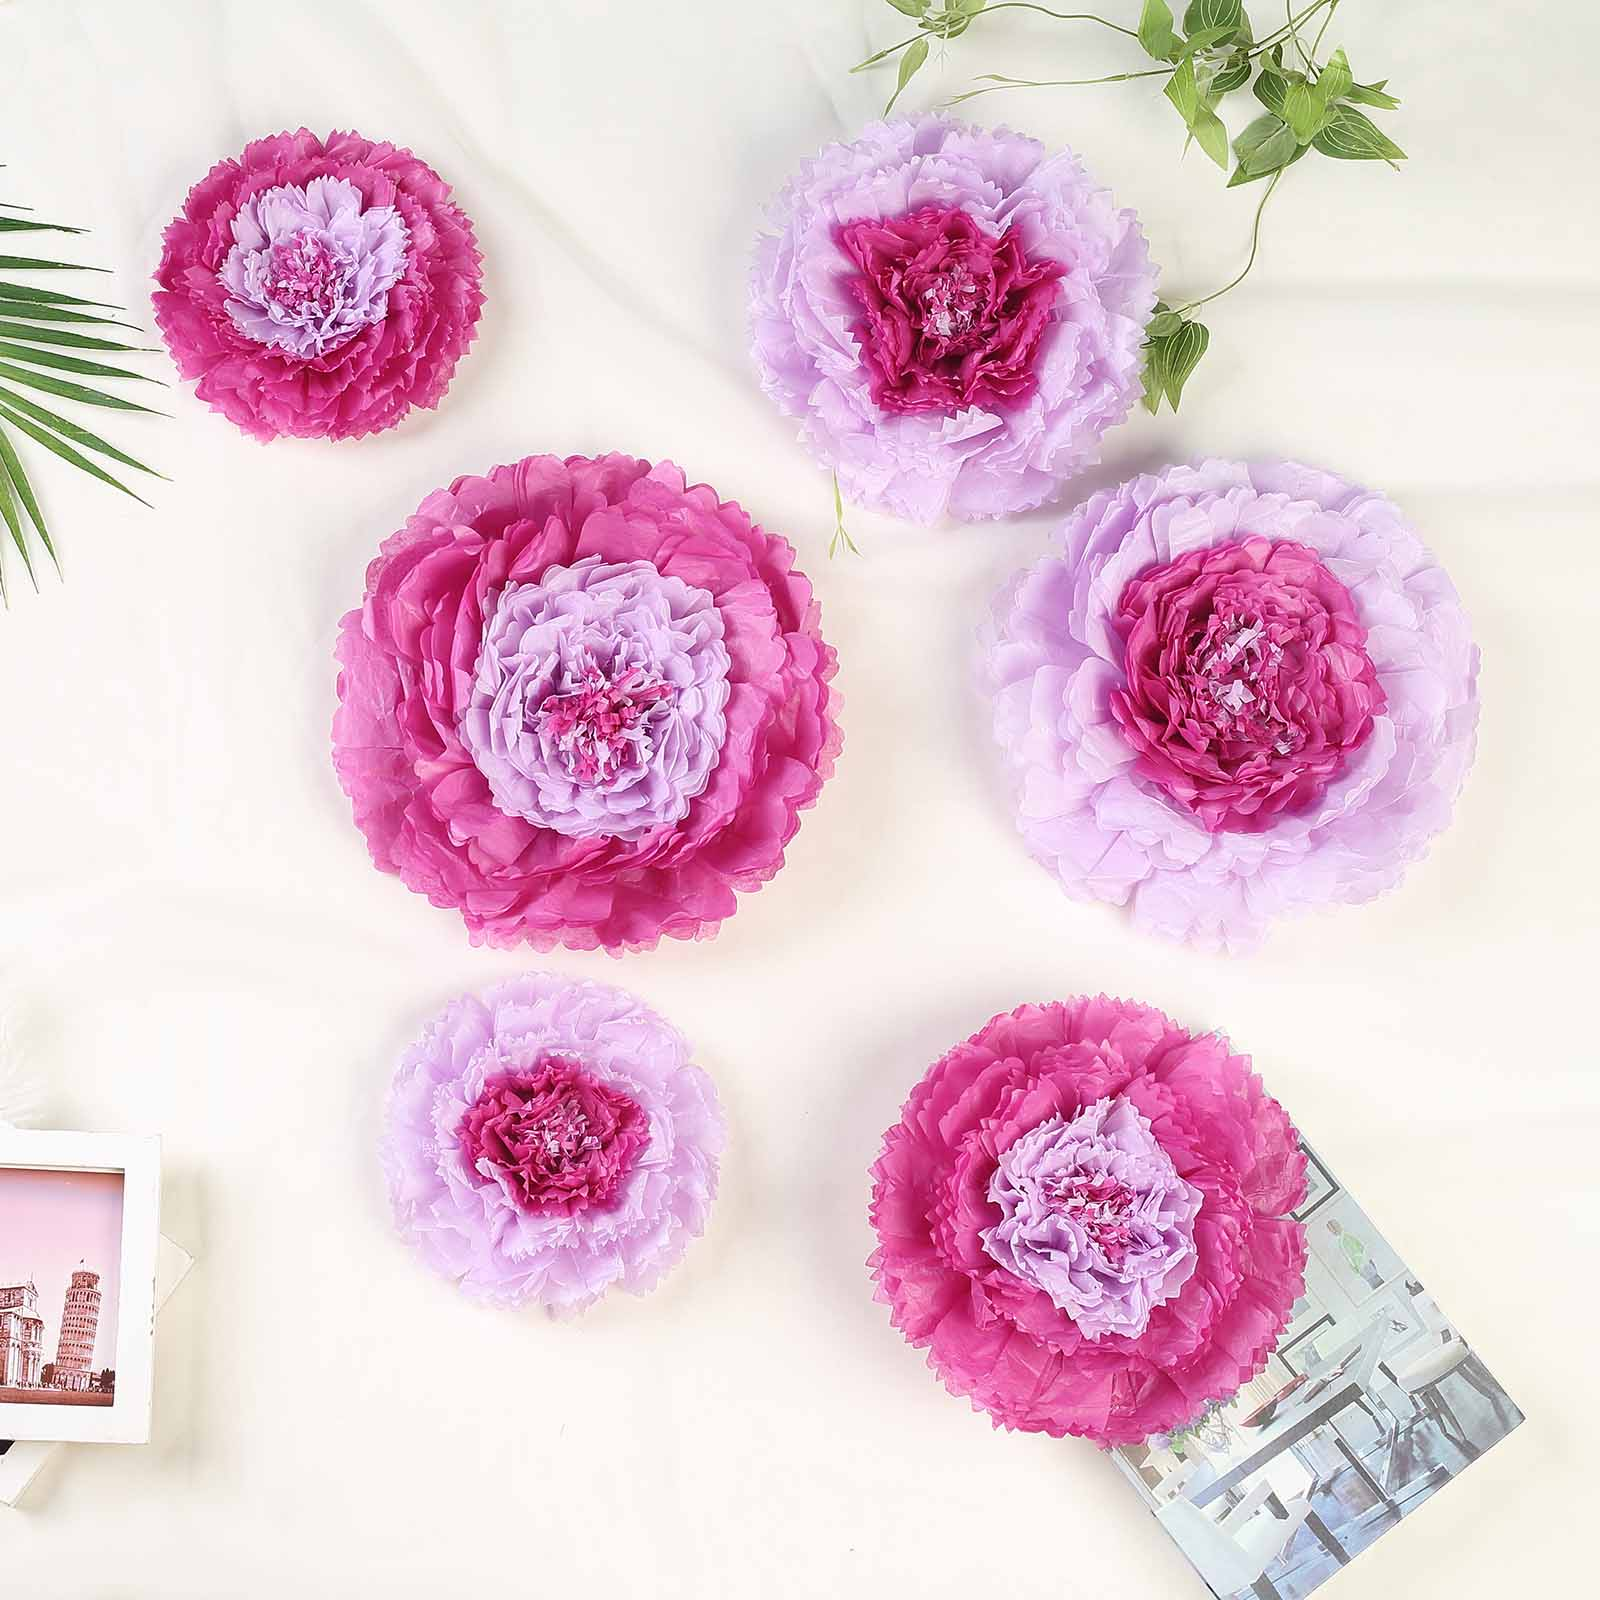 Balsacircle 6 Pcs 7 9 11 Inch Carnations Large Paper Flowers Wall Backdrop Party Wedding Accessories Decorations Supplies Sale